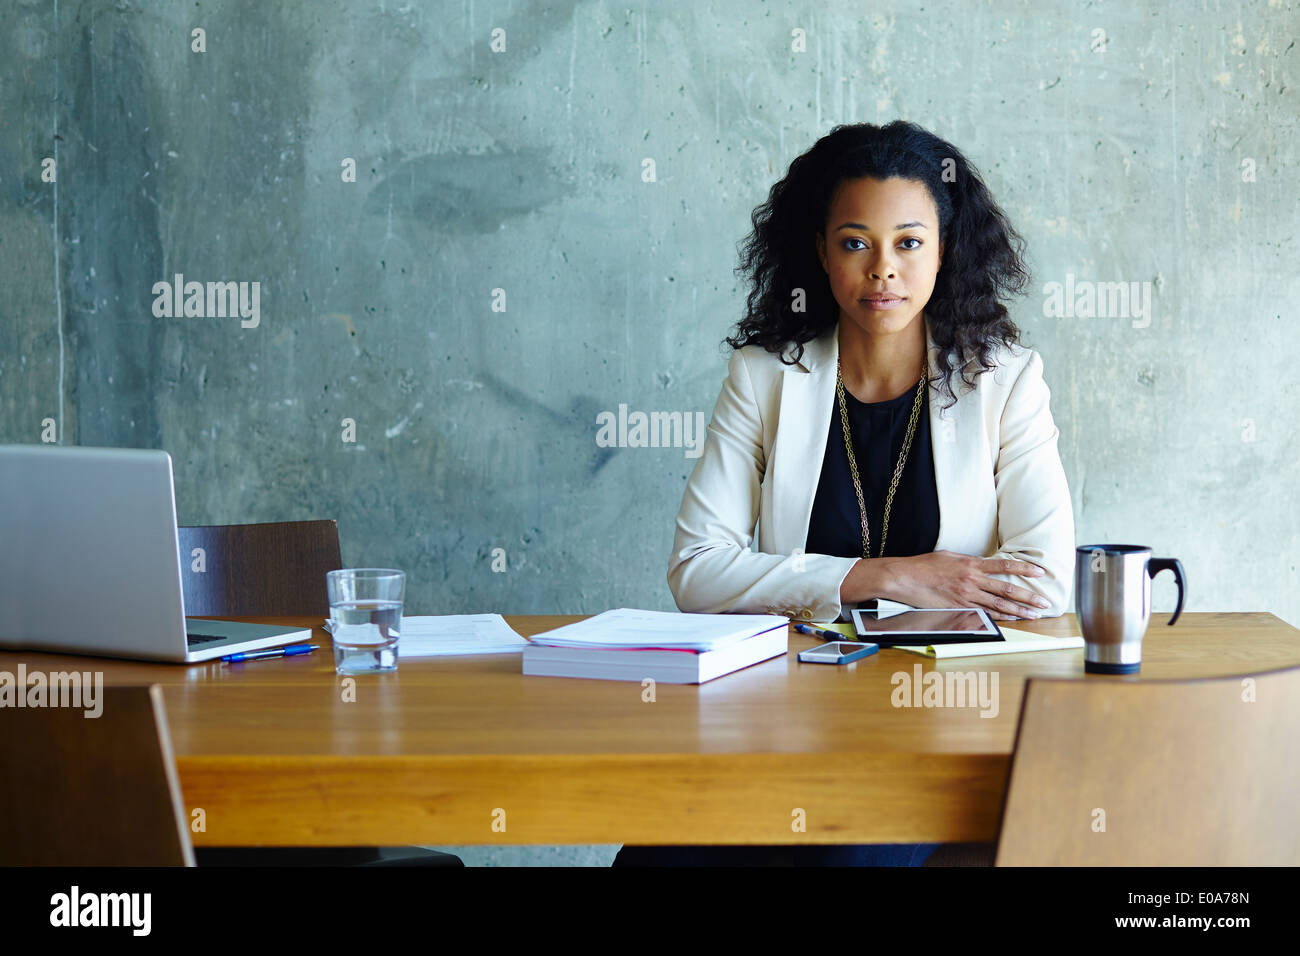 Portrait of young businesswoman at conference table Photo Stock